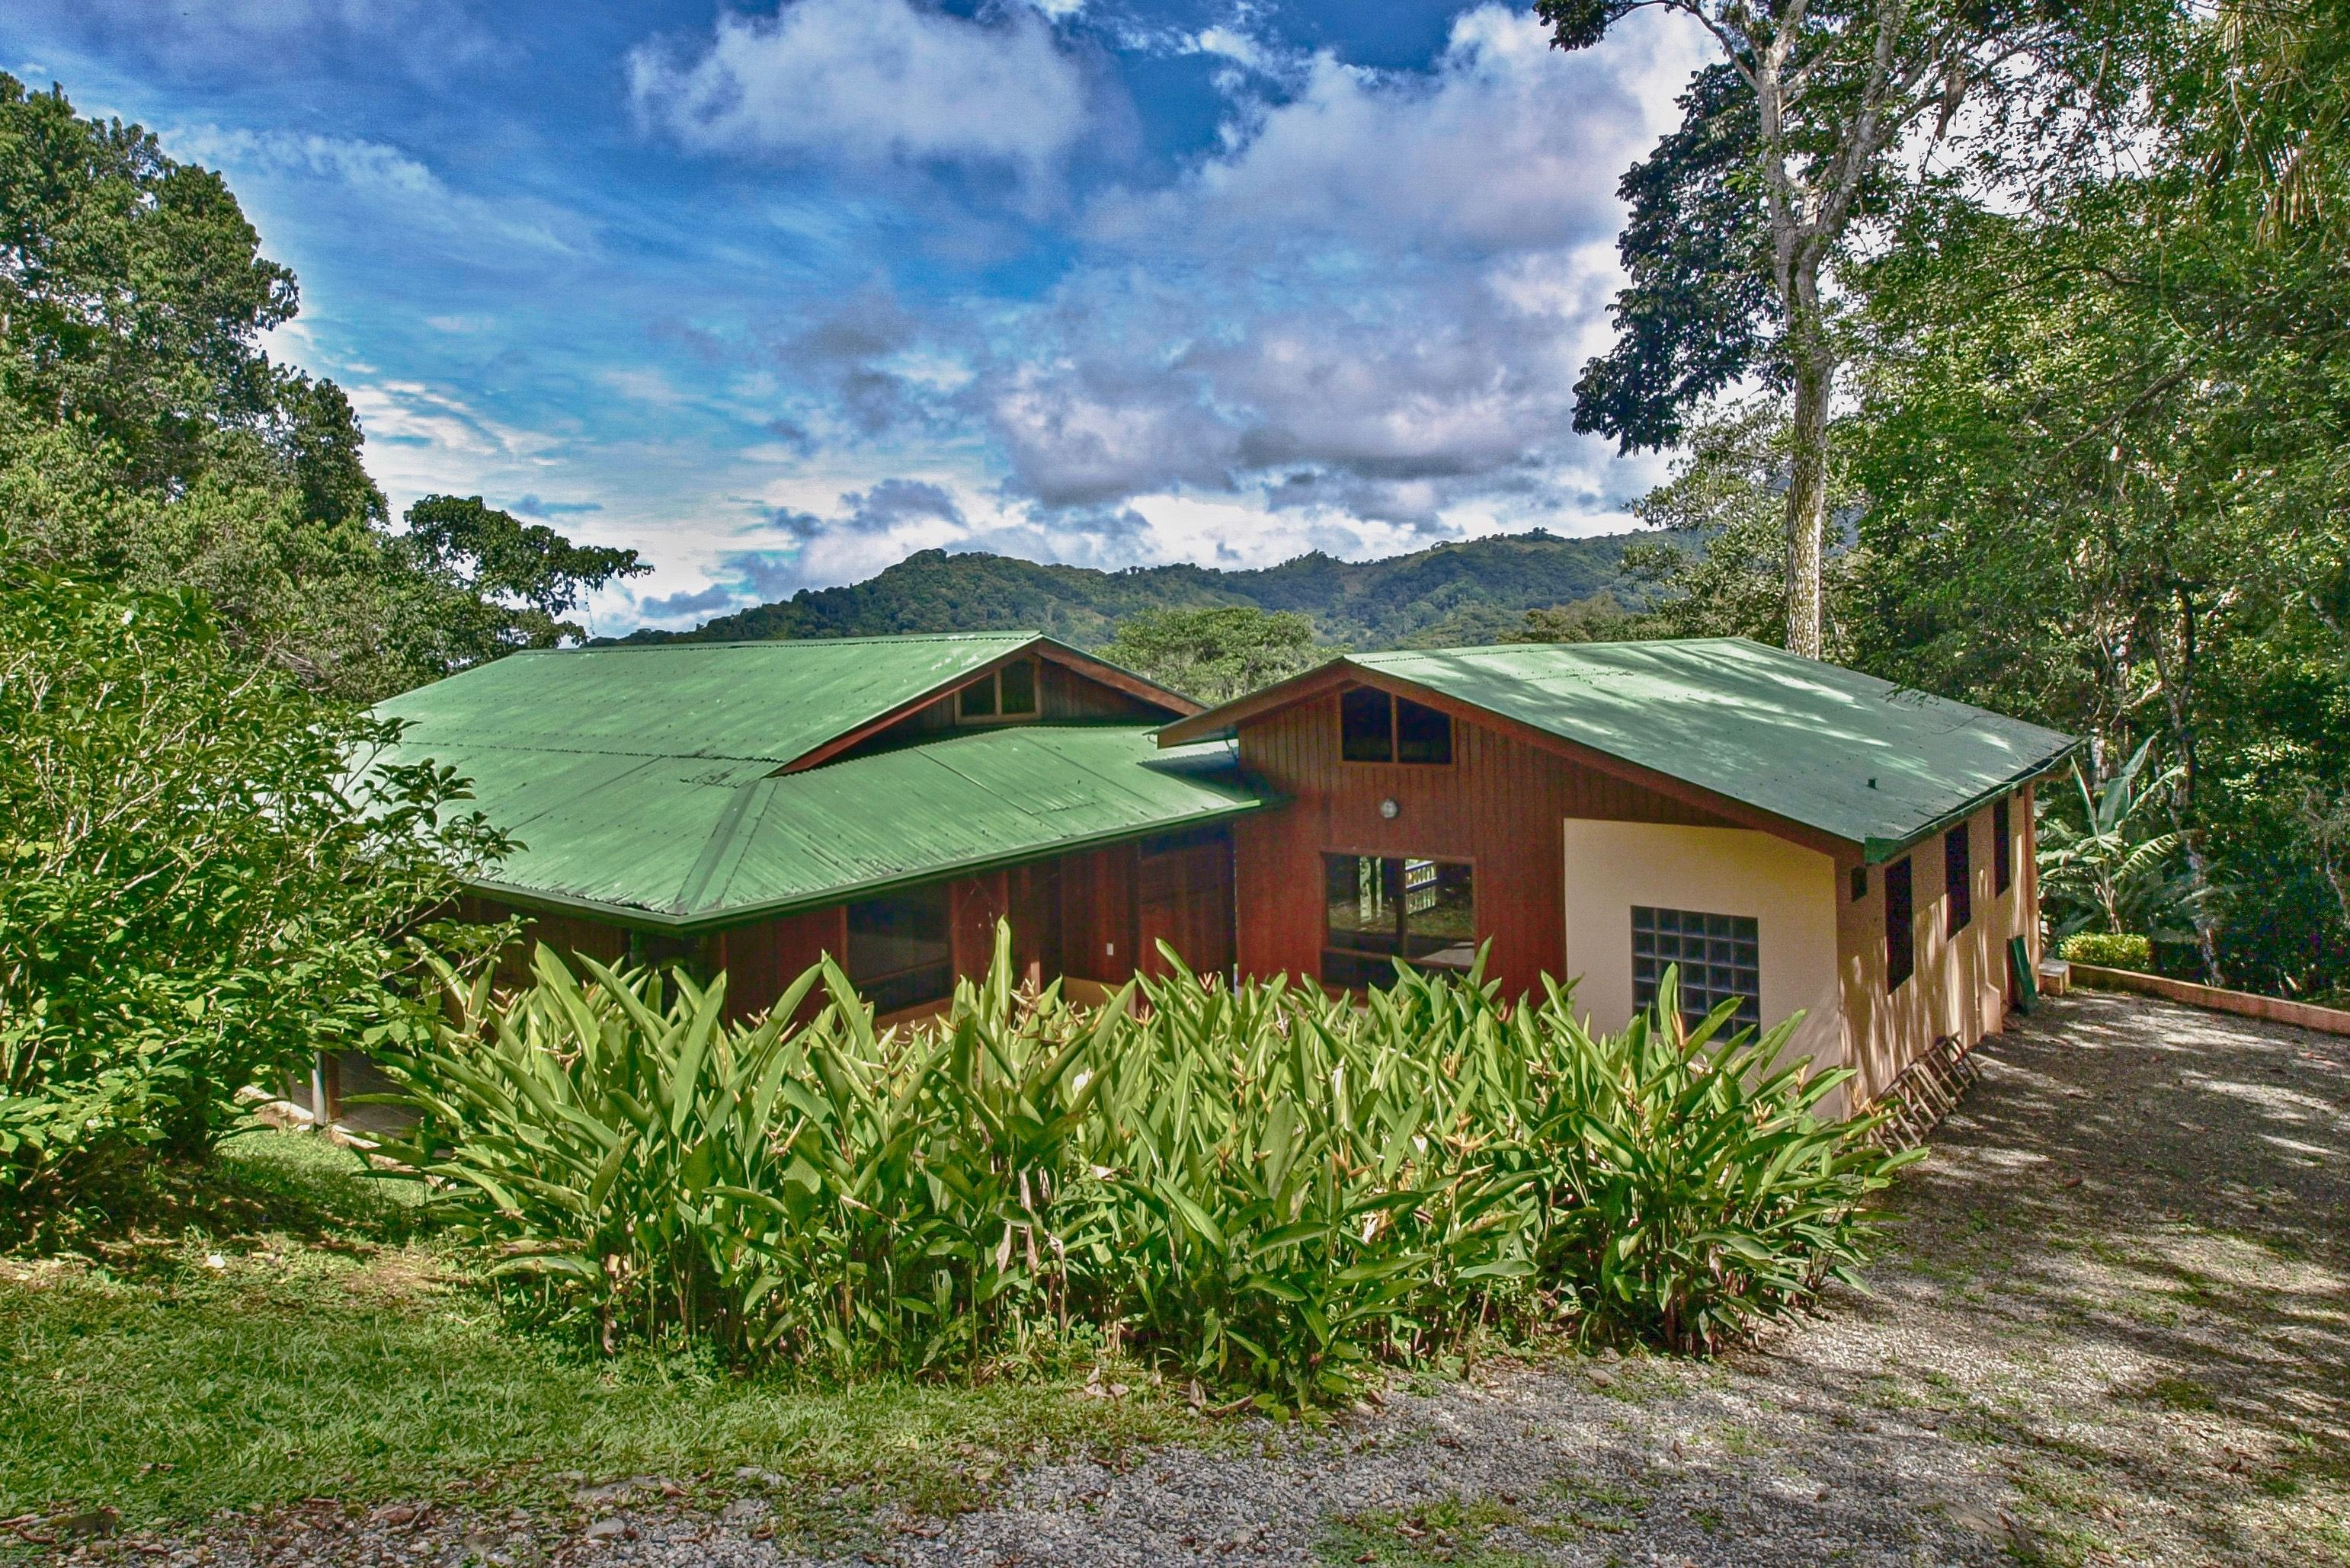 3.2 ACRES – 3 Bedroom Home, Beautiful Mountian View, Very Flat Buildable Acreage, Creek And Fruit Trees!!!